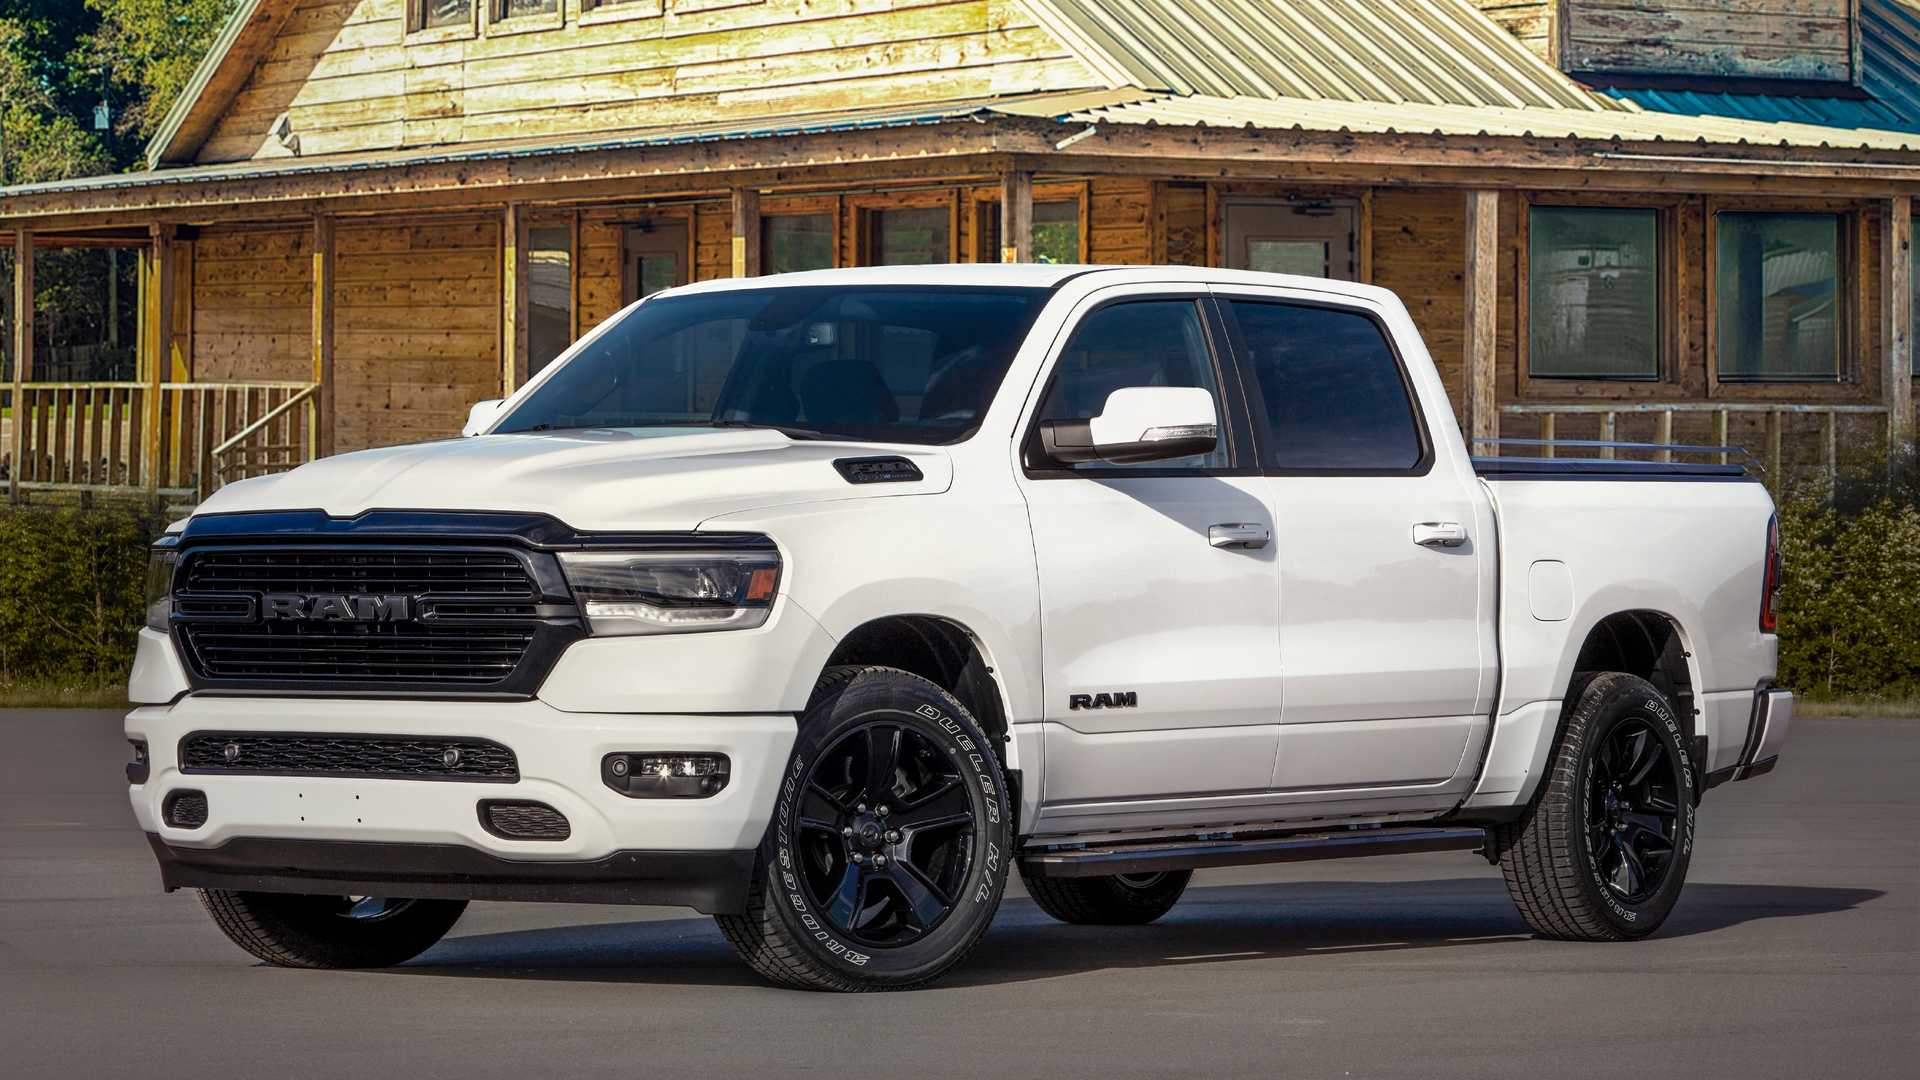 2020 Ram 1500 Gets Night Edition And Rebel Black Package